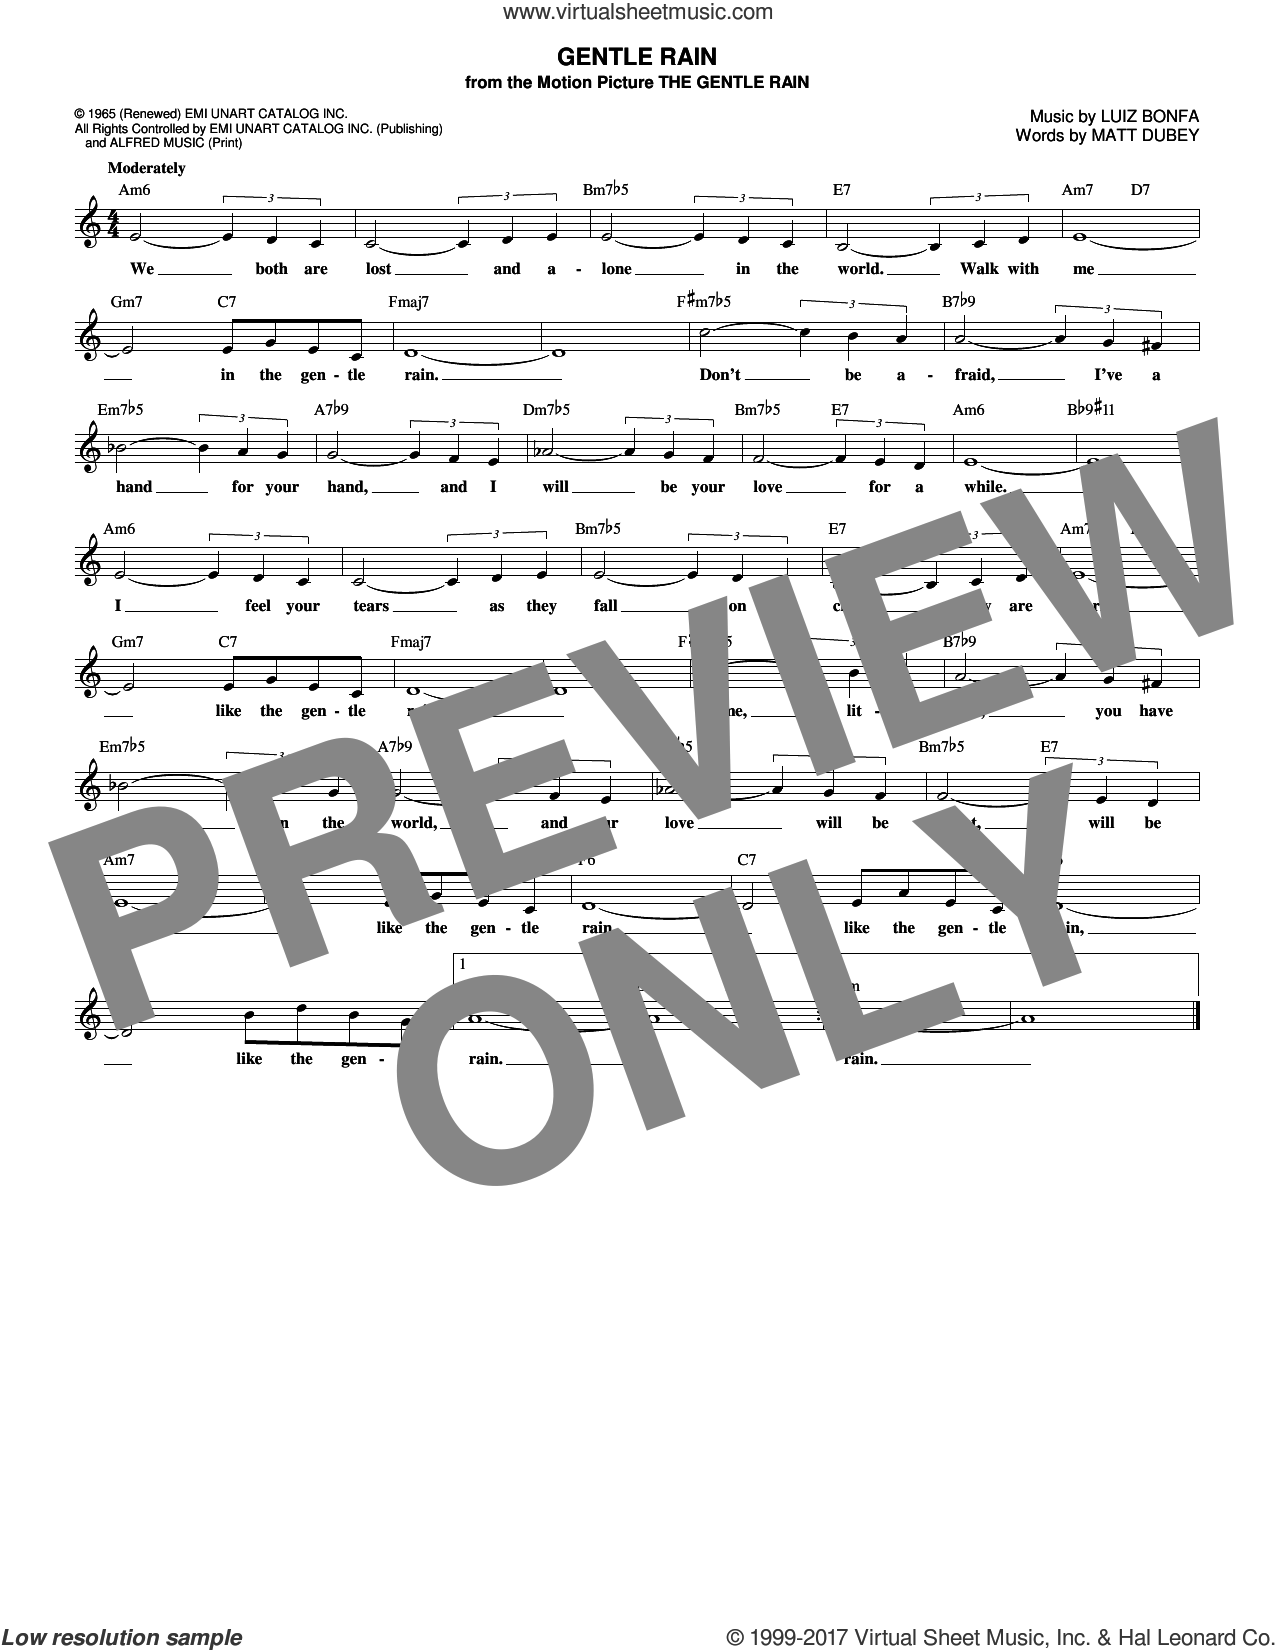 Gentle Rain sheet music for voice and other instruments (fake book) by Luiz Bonfa and Matt Dubey, intermediate skill level